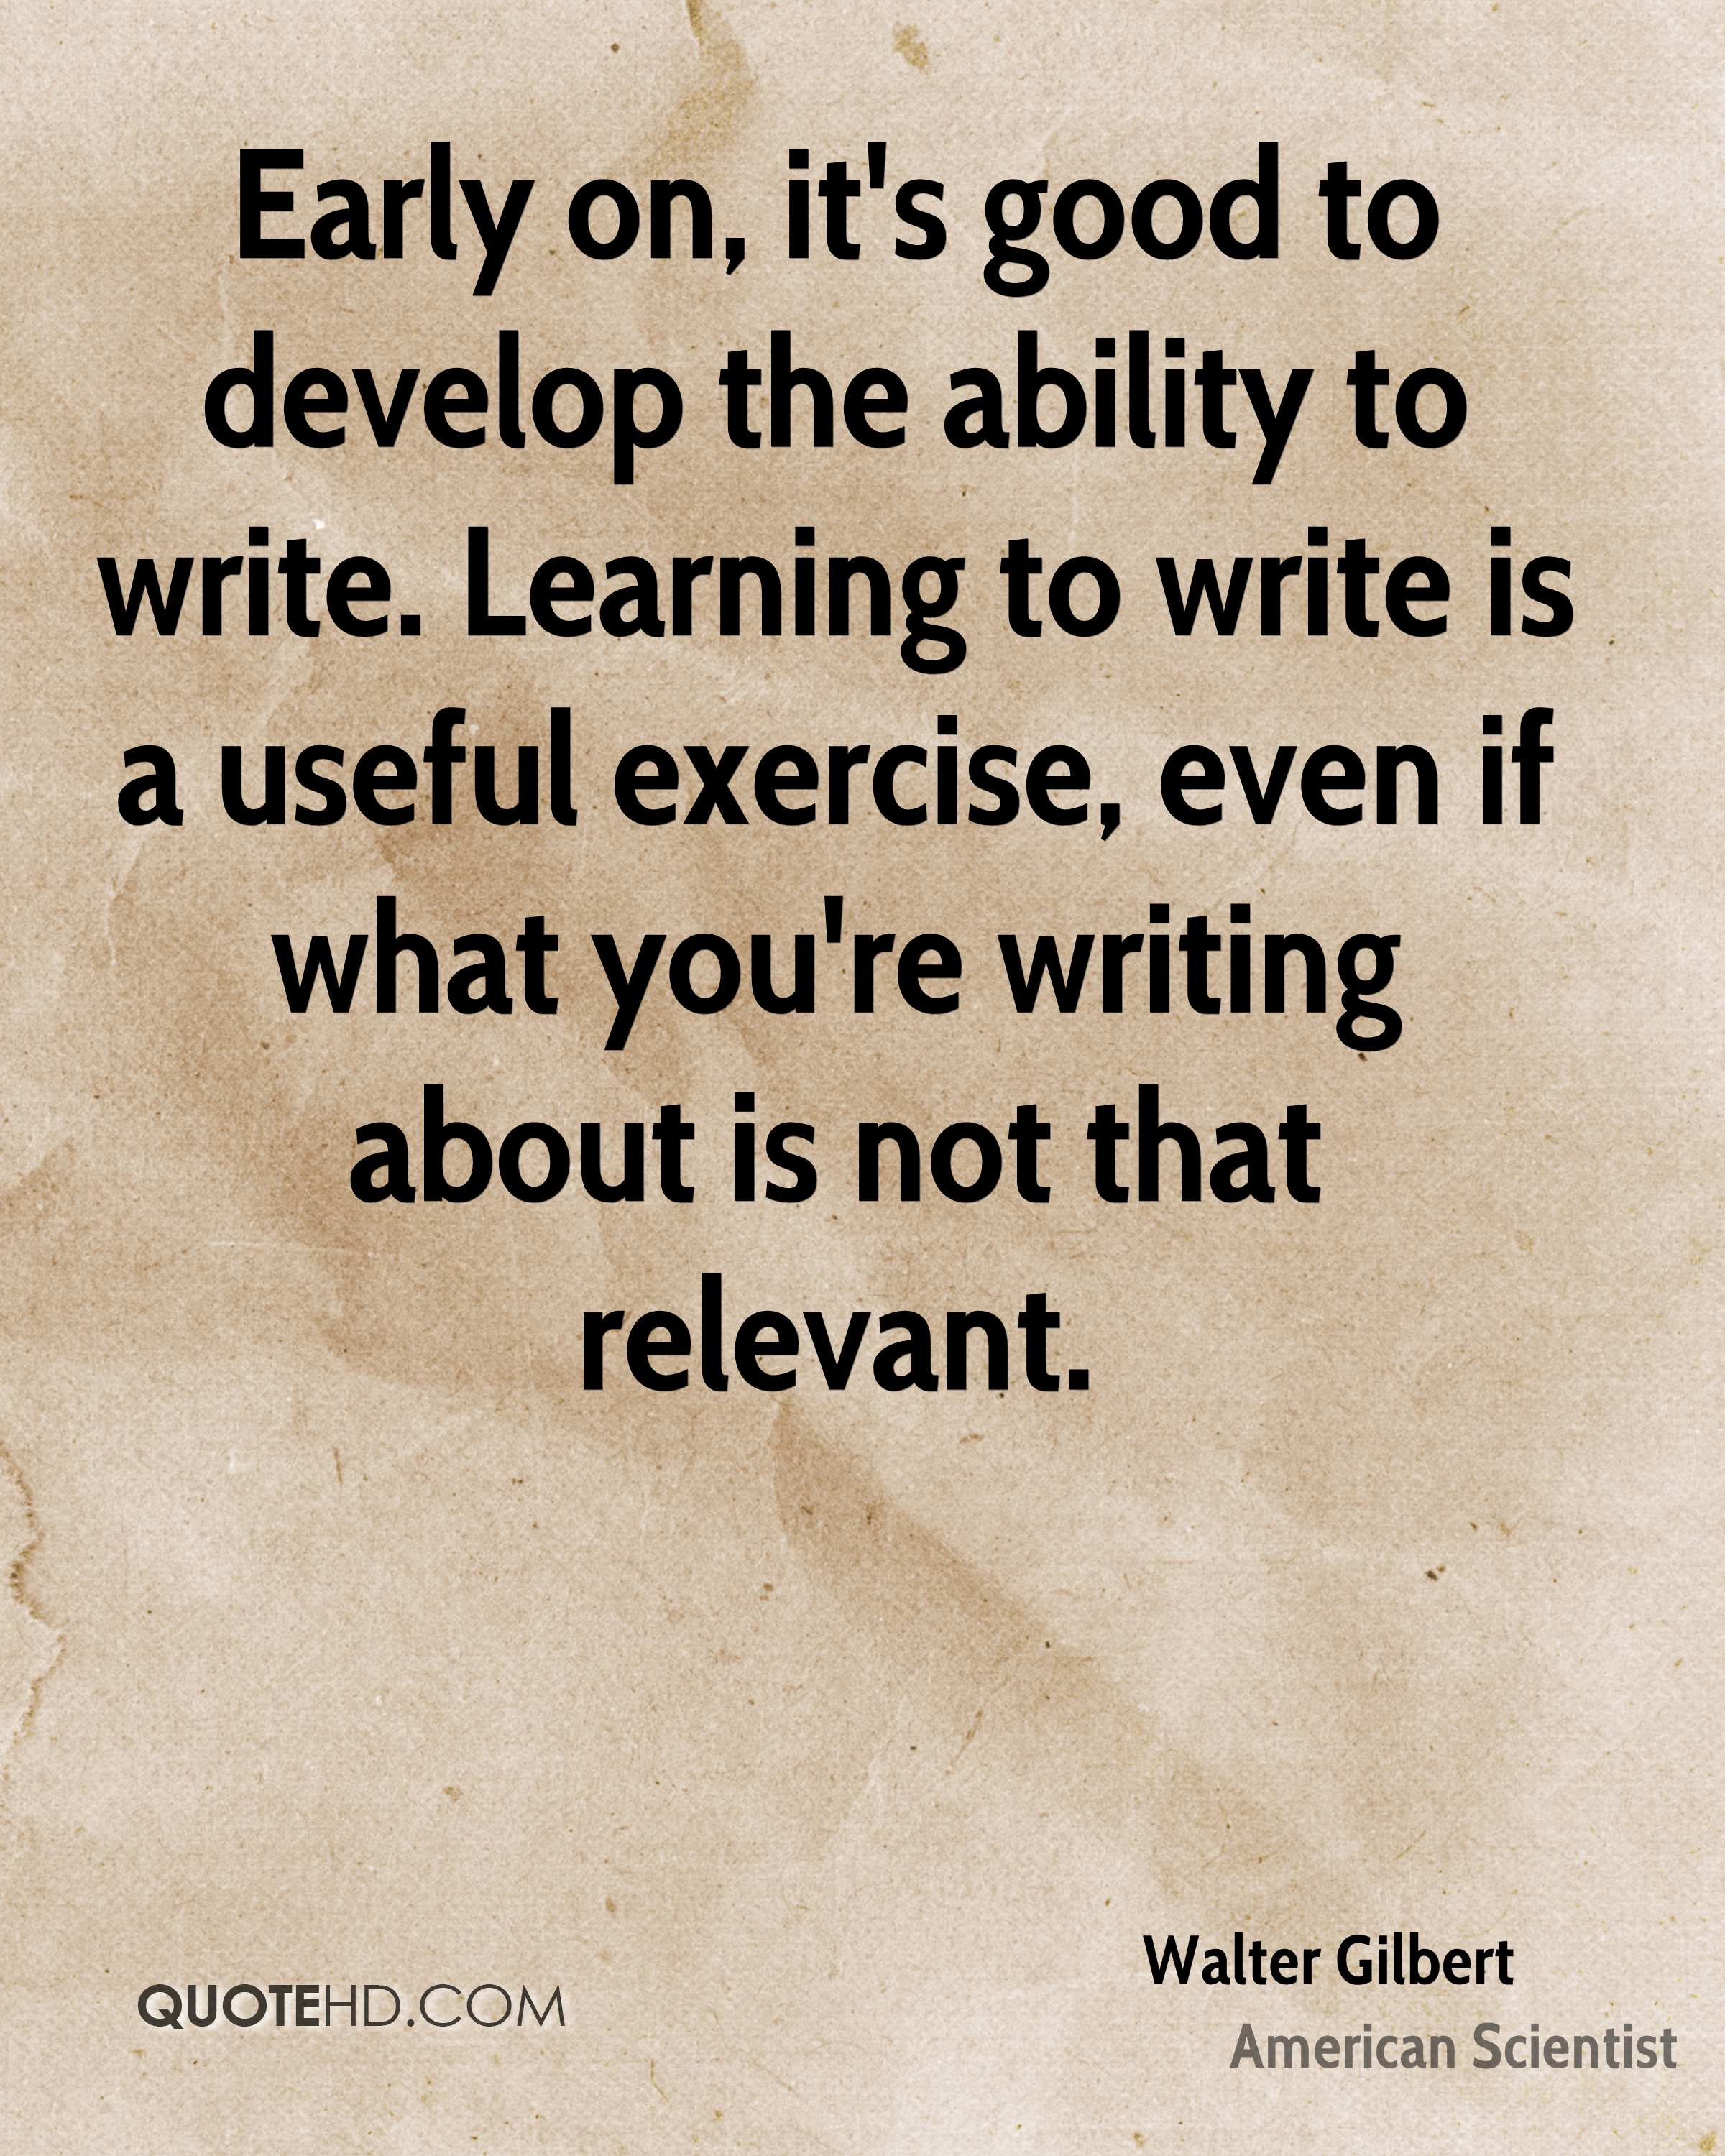 Early on, it's good to develop the ability to write. Learning to write is a useful exercise, even if what you're writing about is not that relevant.